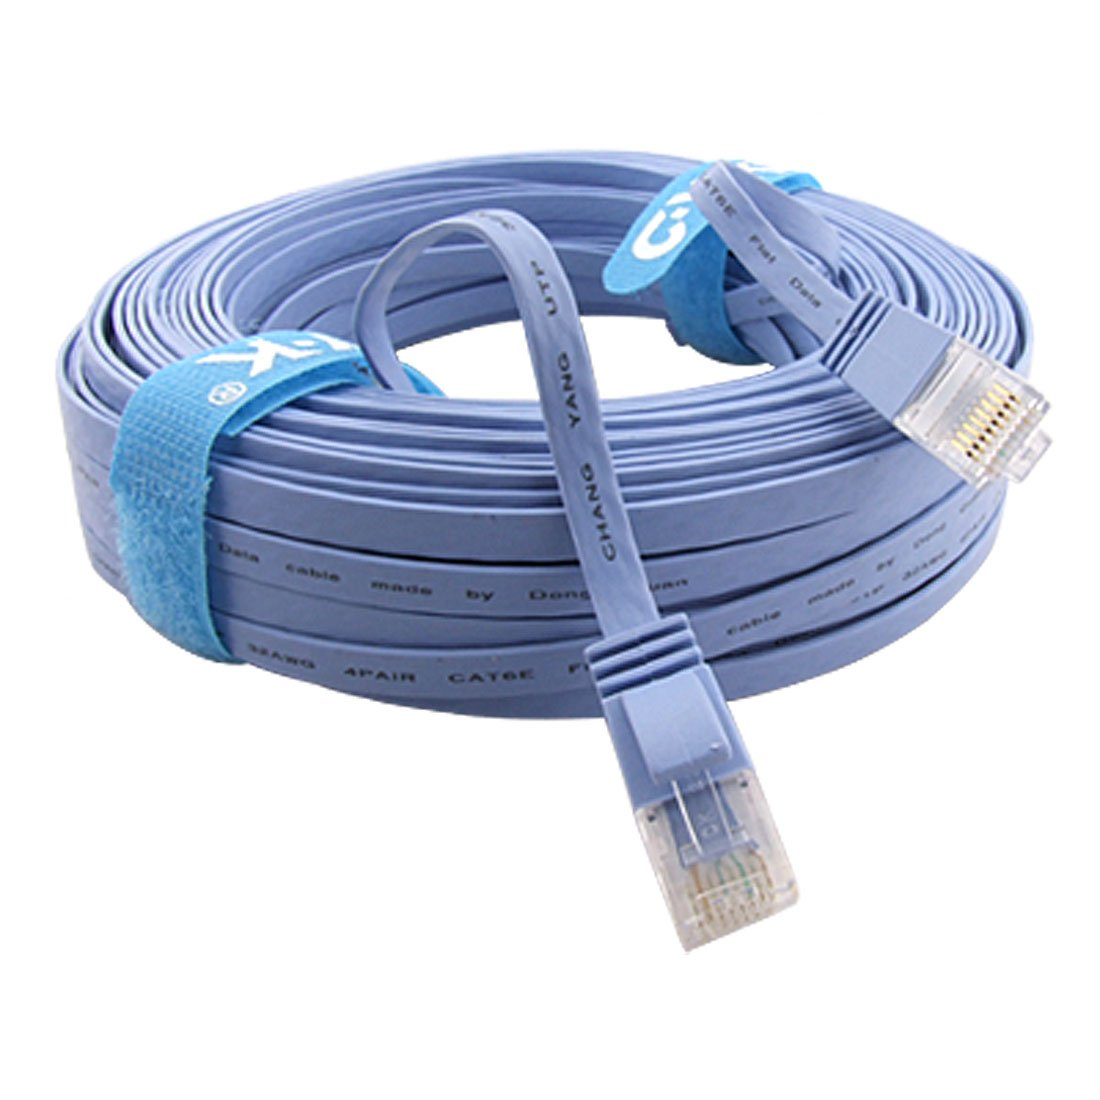 cable rj45 cat 6 affordable utp cable with rj patch cord with rj cat m buy take with cable rj45. Black Bedroom Furniture Sets. Home Design Ideas